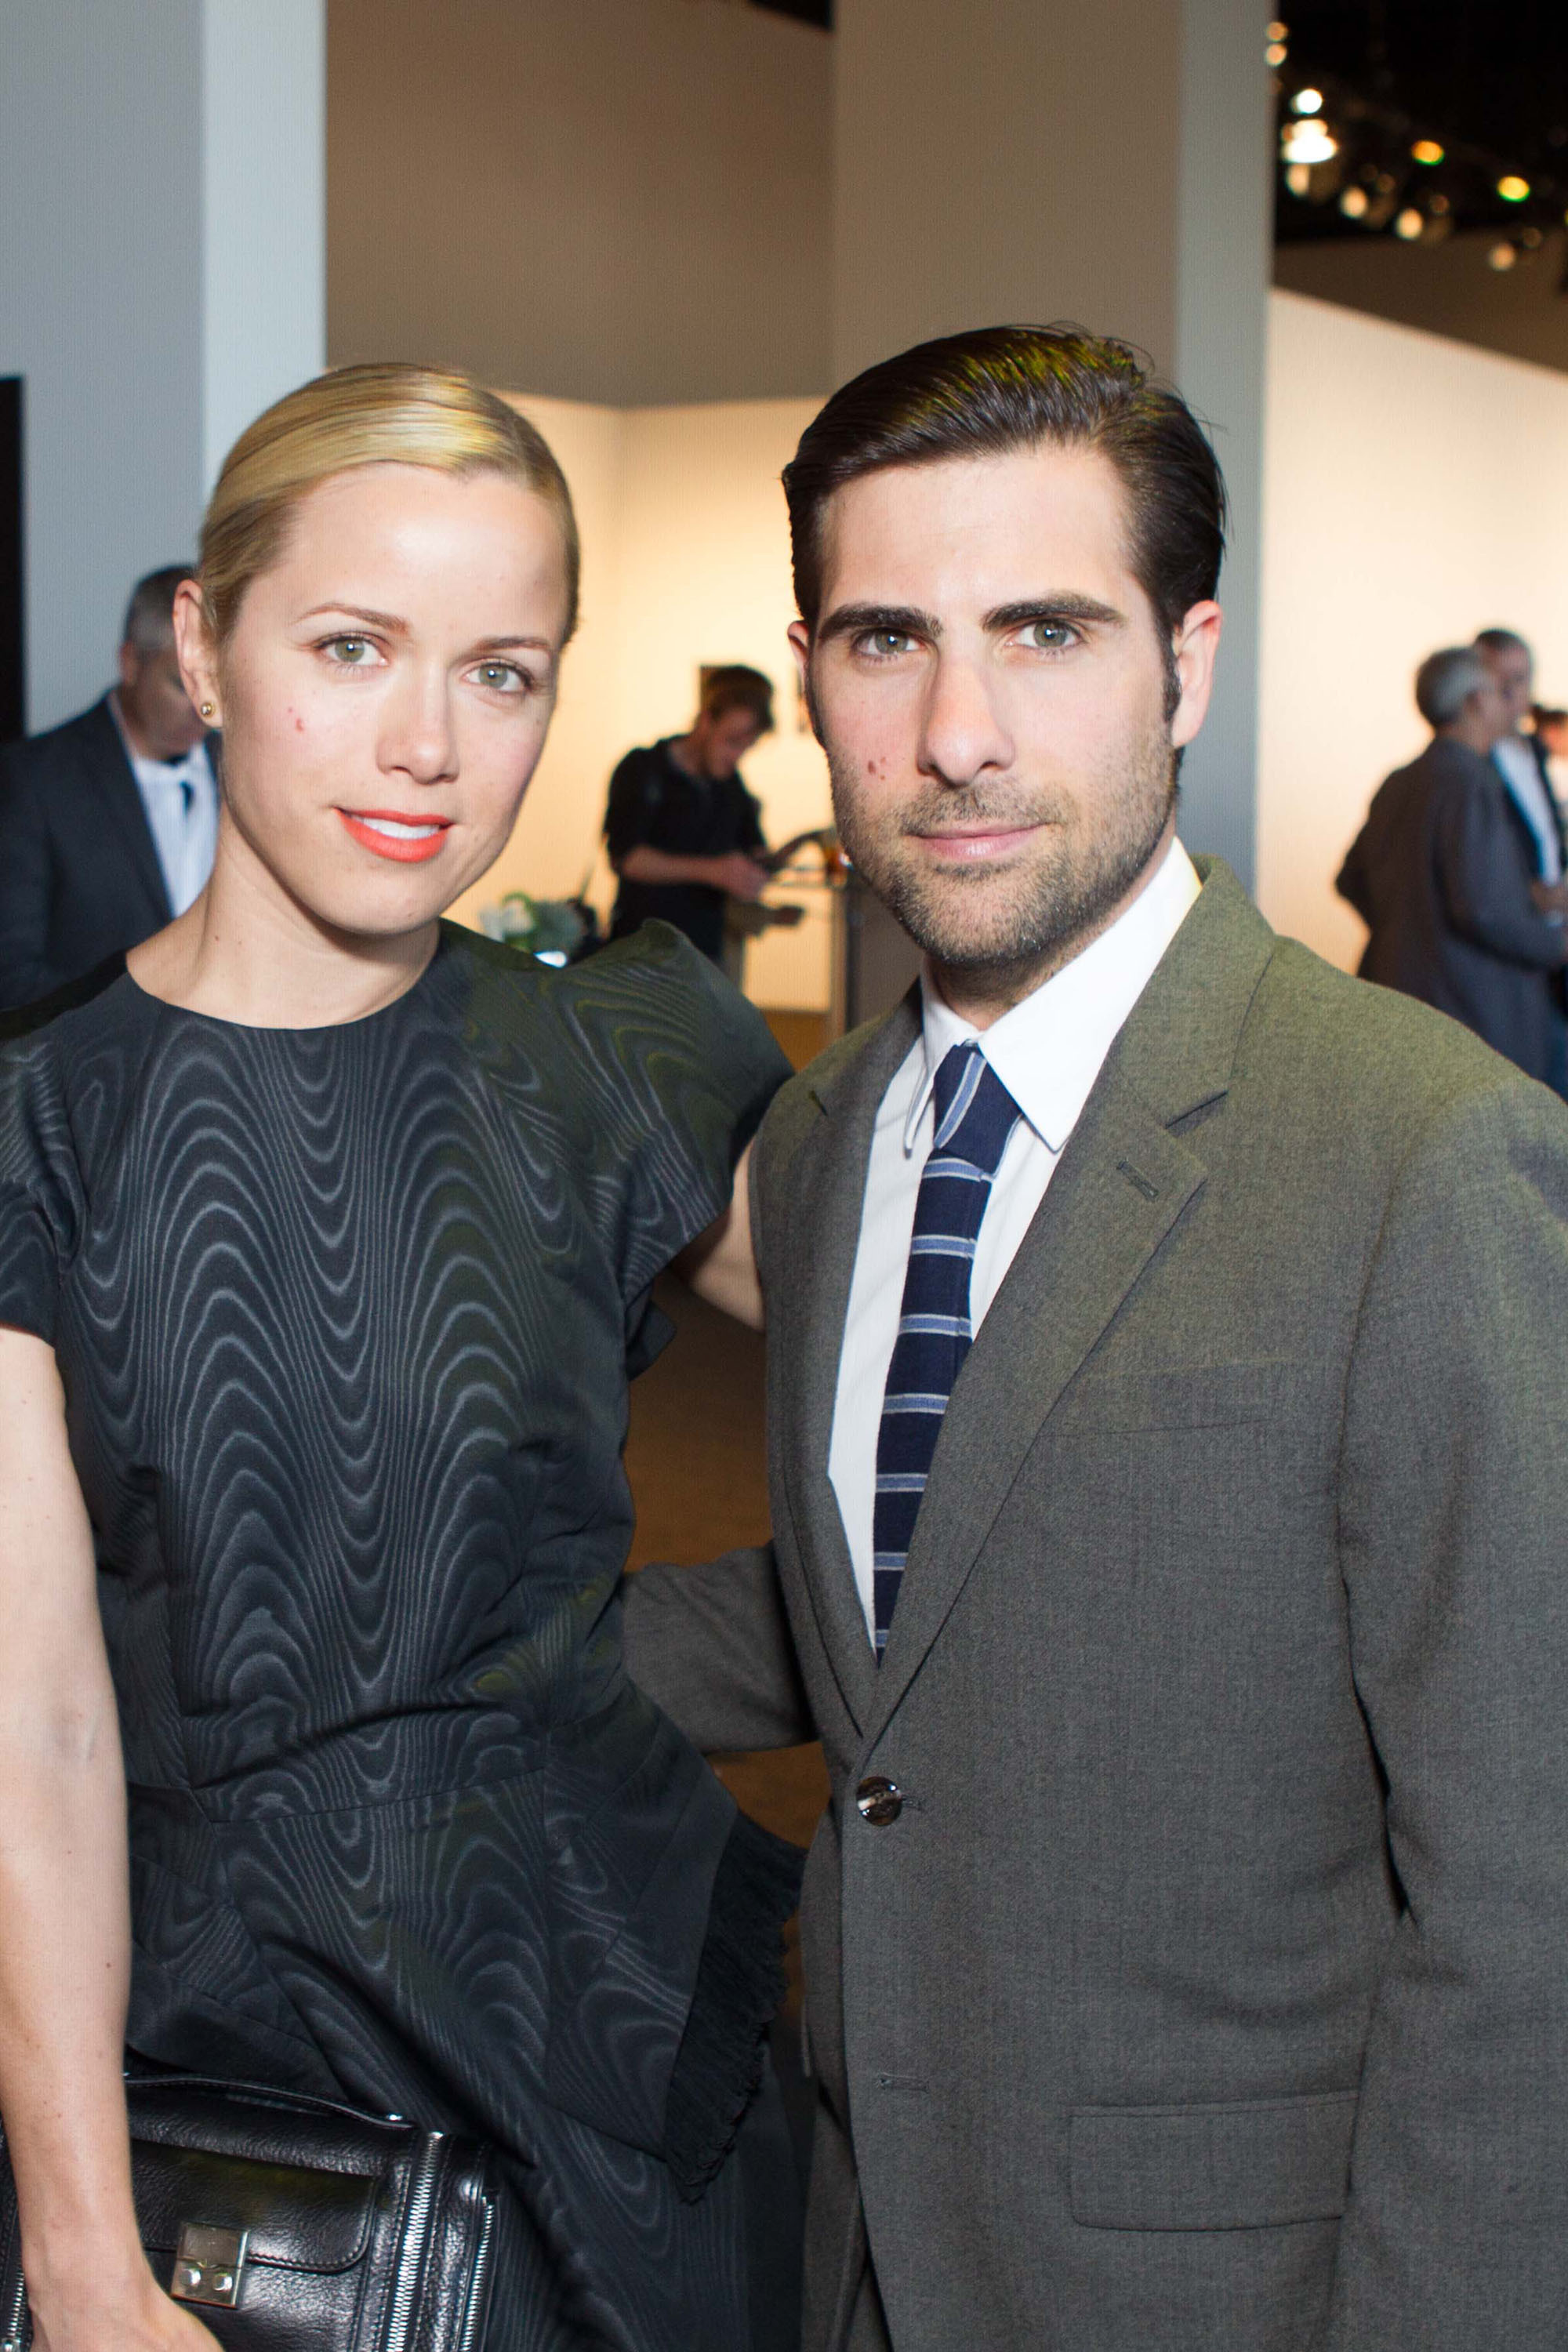 Brady Cunningham and Jason Schwartzman